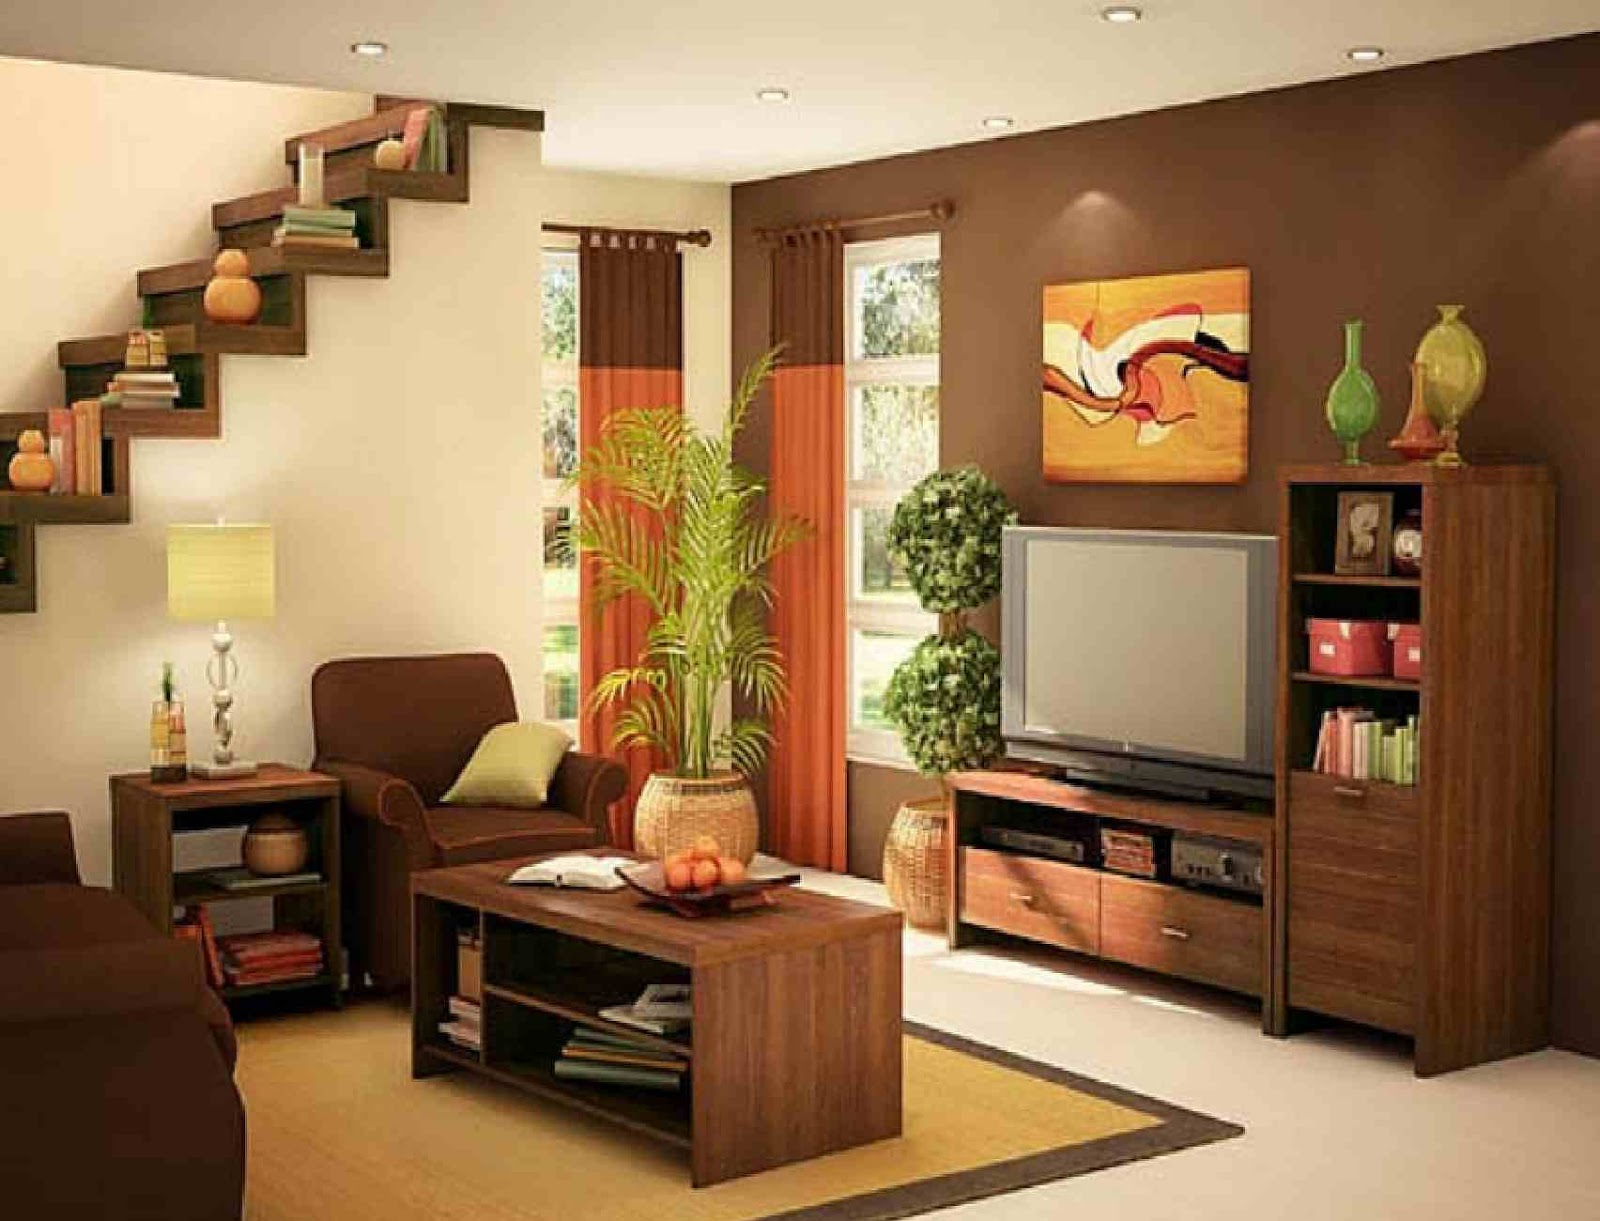 Home interior designs simple living room designs for Interior design for living room images